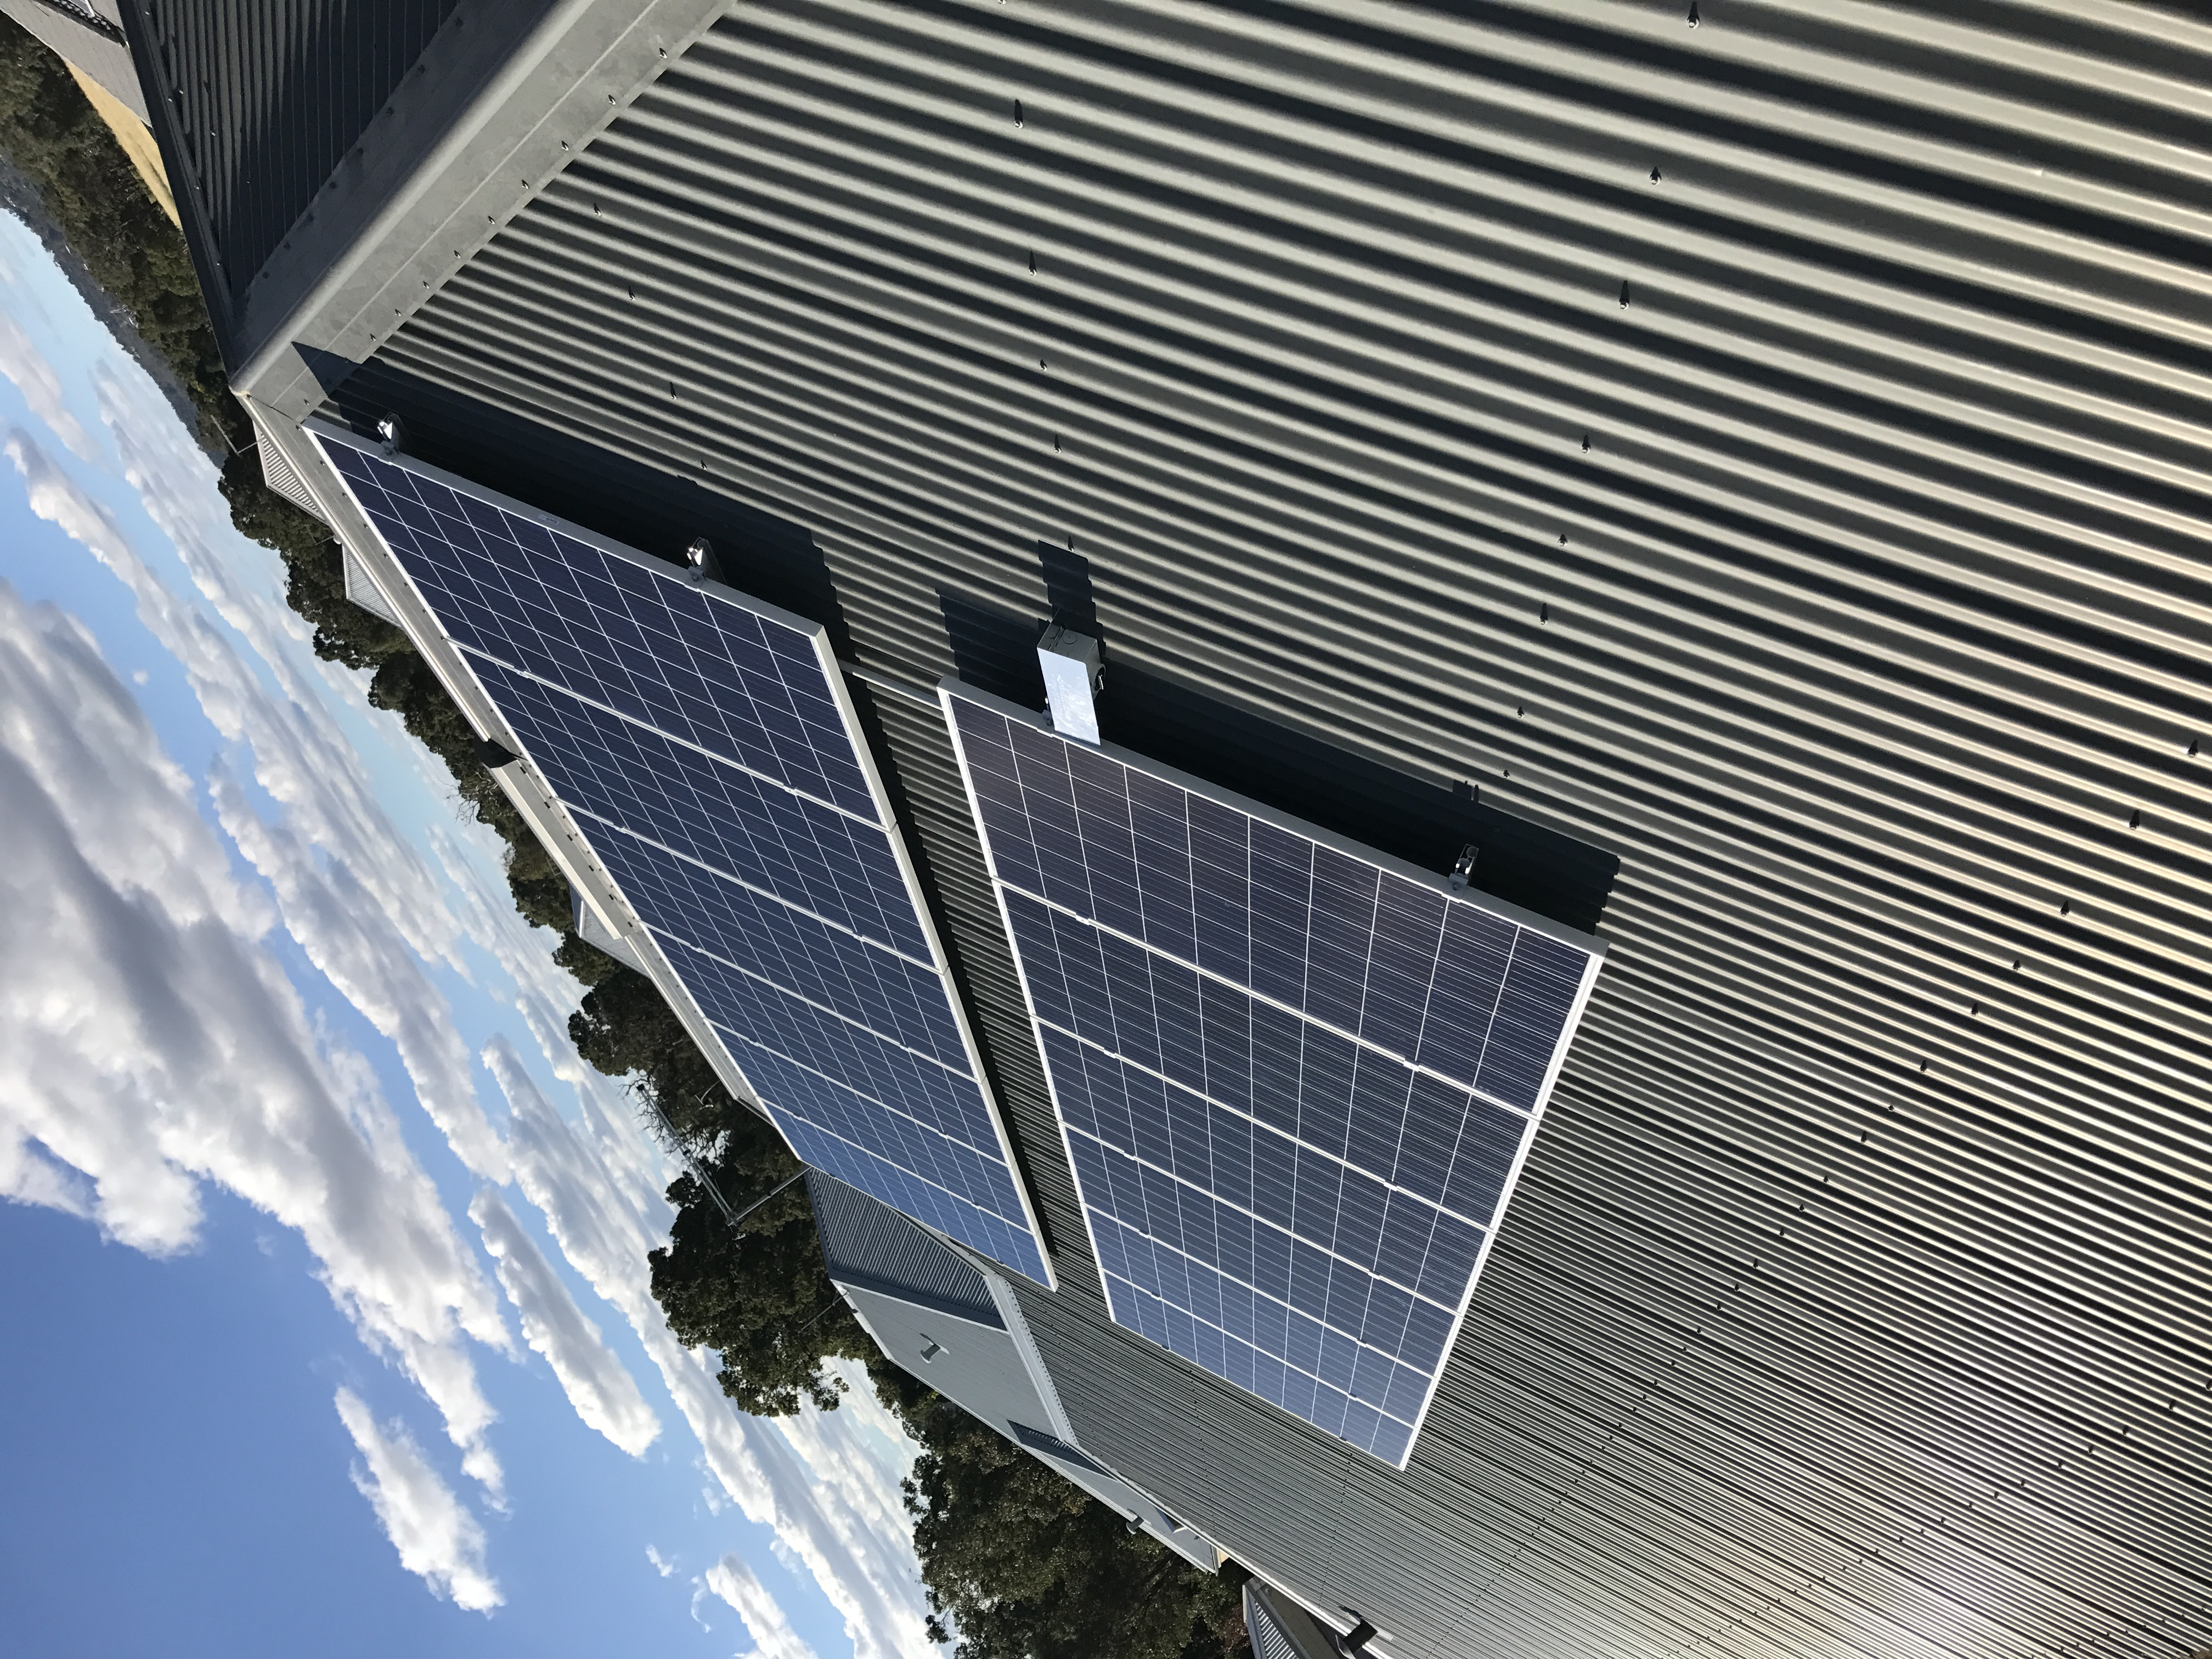 Advantages of photovoltaic solar panels Booktopia - 50 Photo Projects - Ideas to Kickstart Your Photography